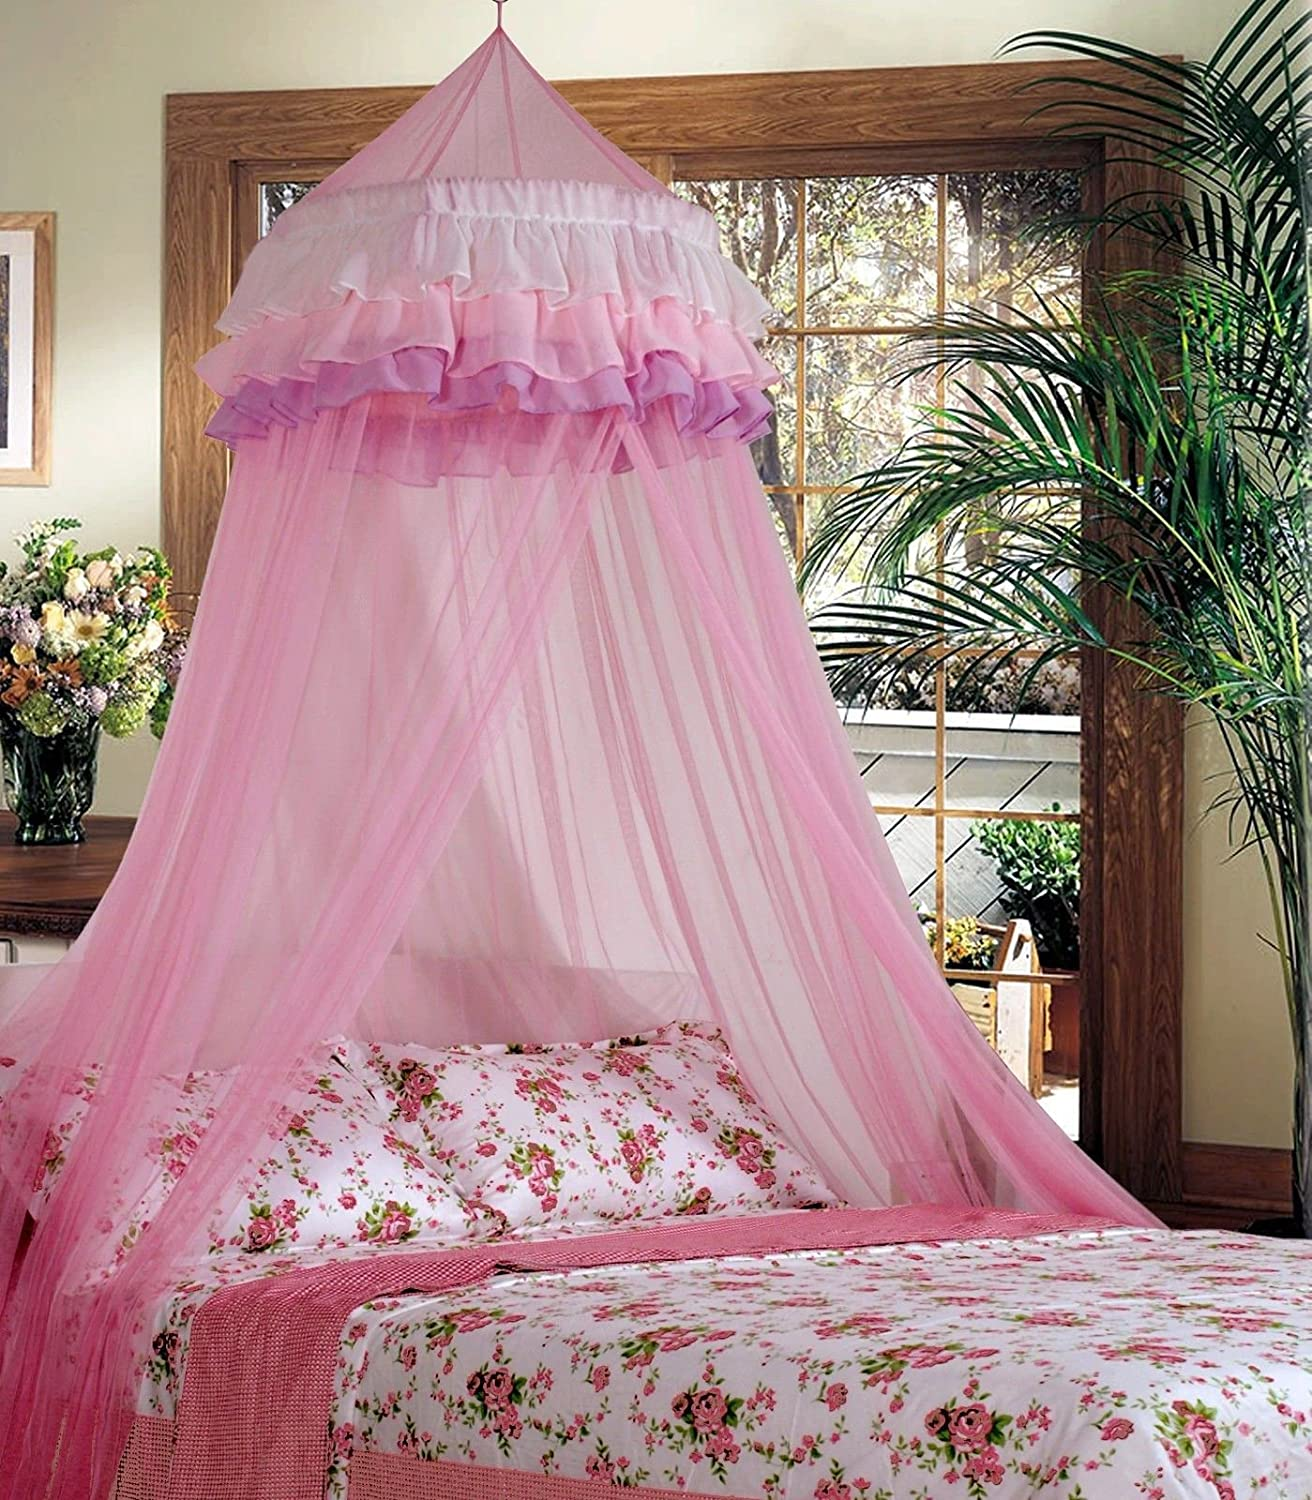 Goplus Princess Bed Canopy Mosquito Netting Dome with Elegant Ruffle Lace for Girls and Baby (Pink) Superbuy YC-US2-150713-072